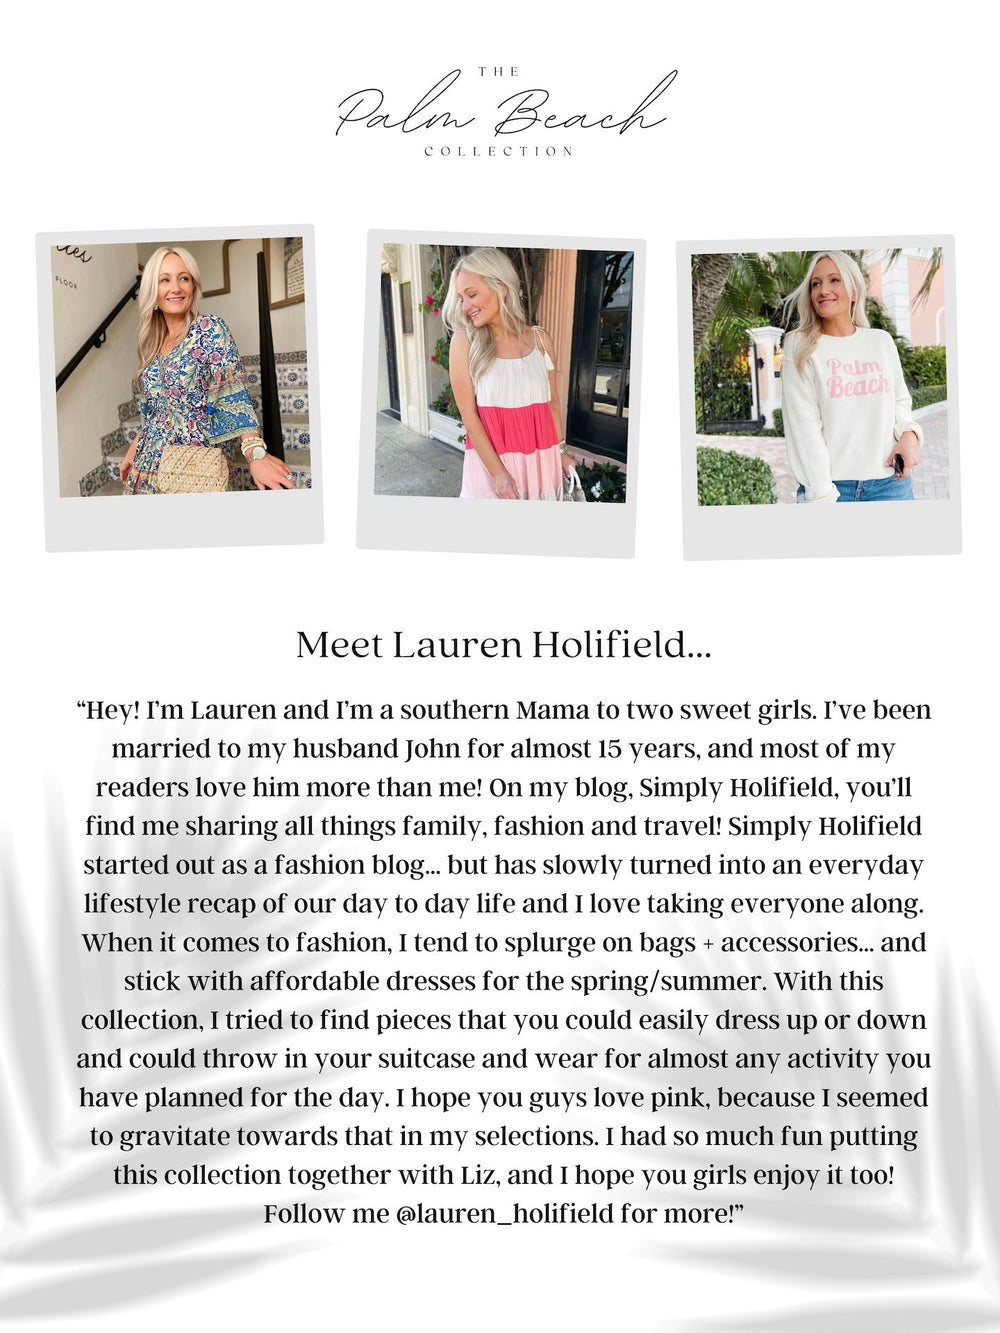 Can I Have Your Attention Dress Inspired by Lauren | The Palm Beach Collection